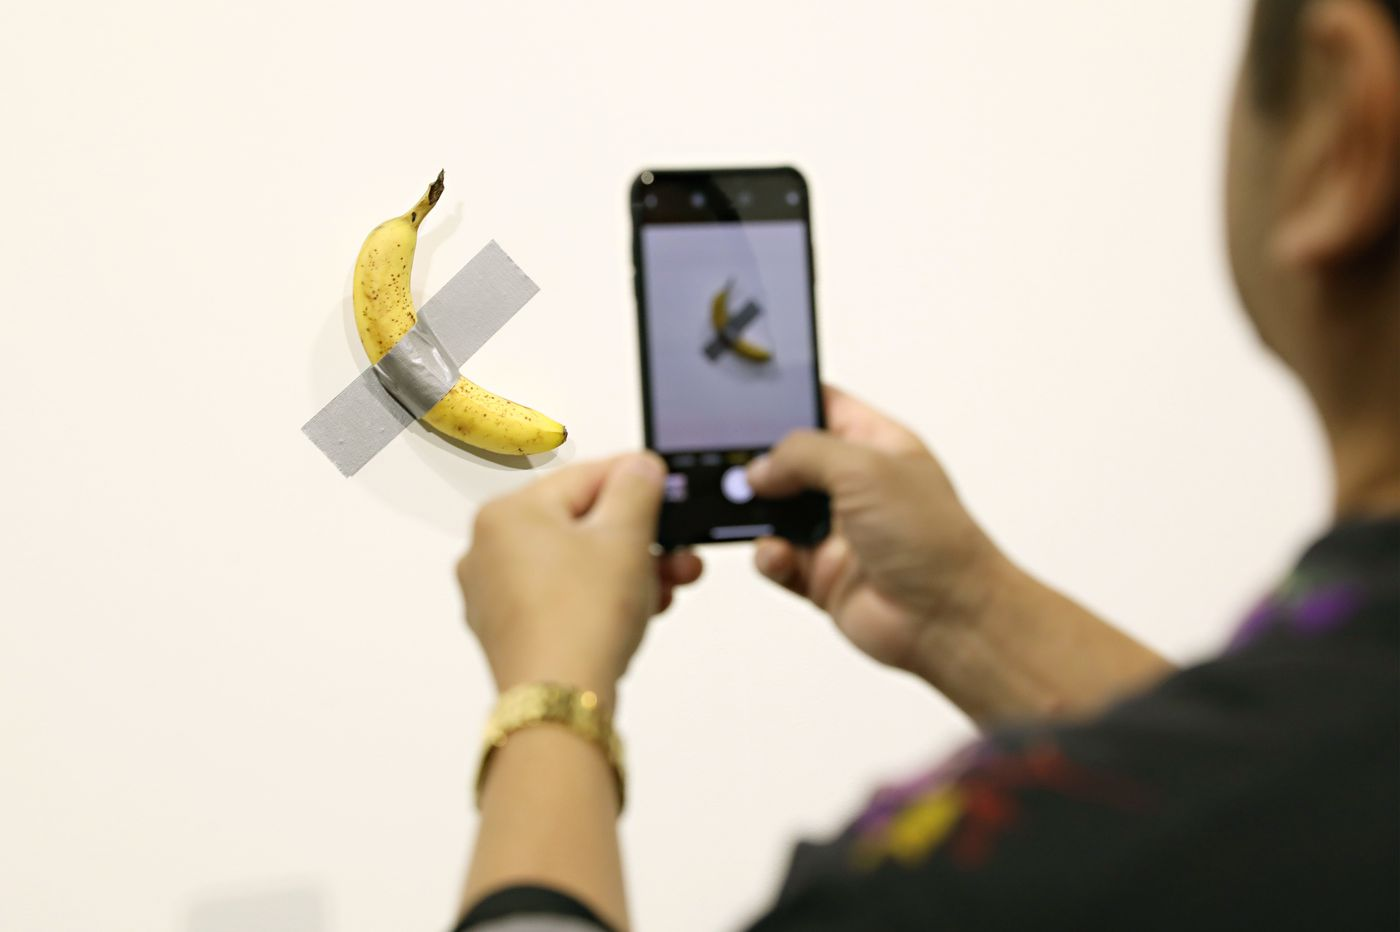 Banana wall vandalized with lipstick at Art Basel. The message was about Jeffrey Epstein